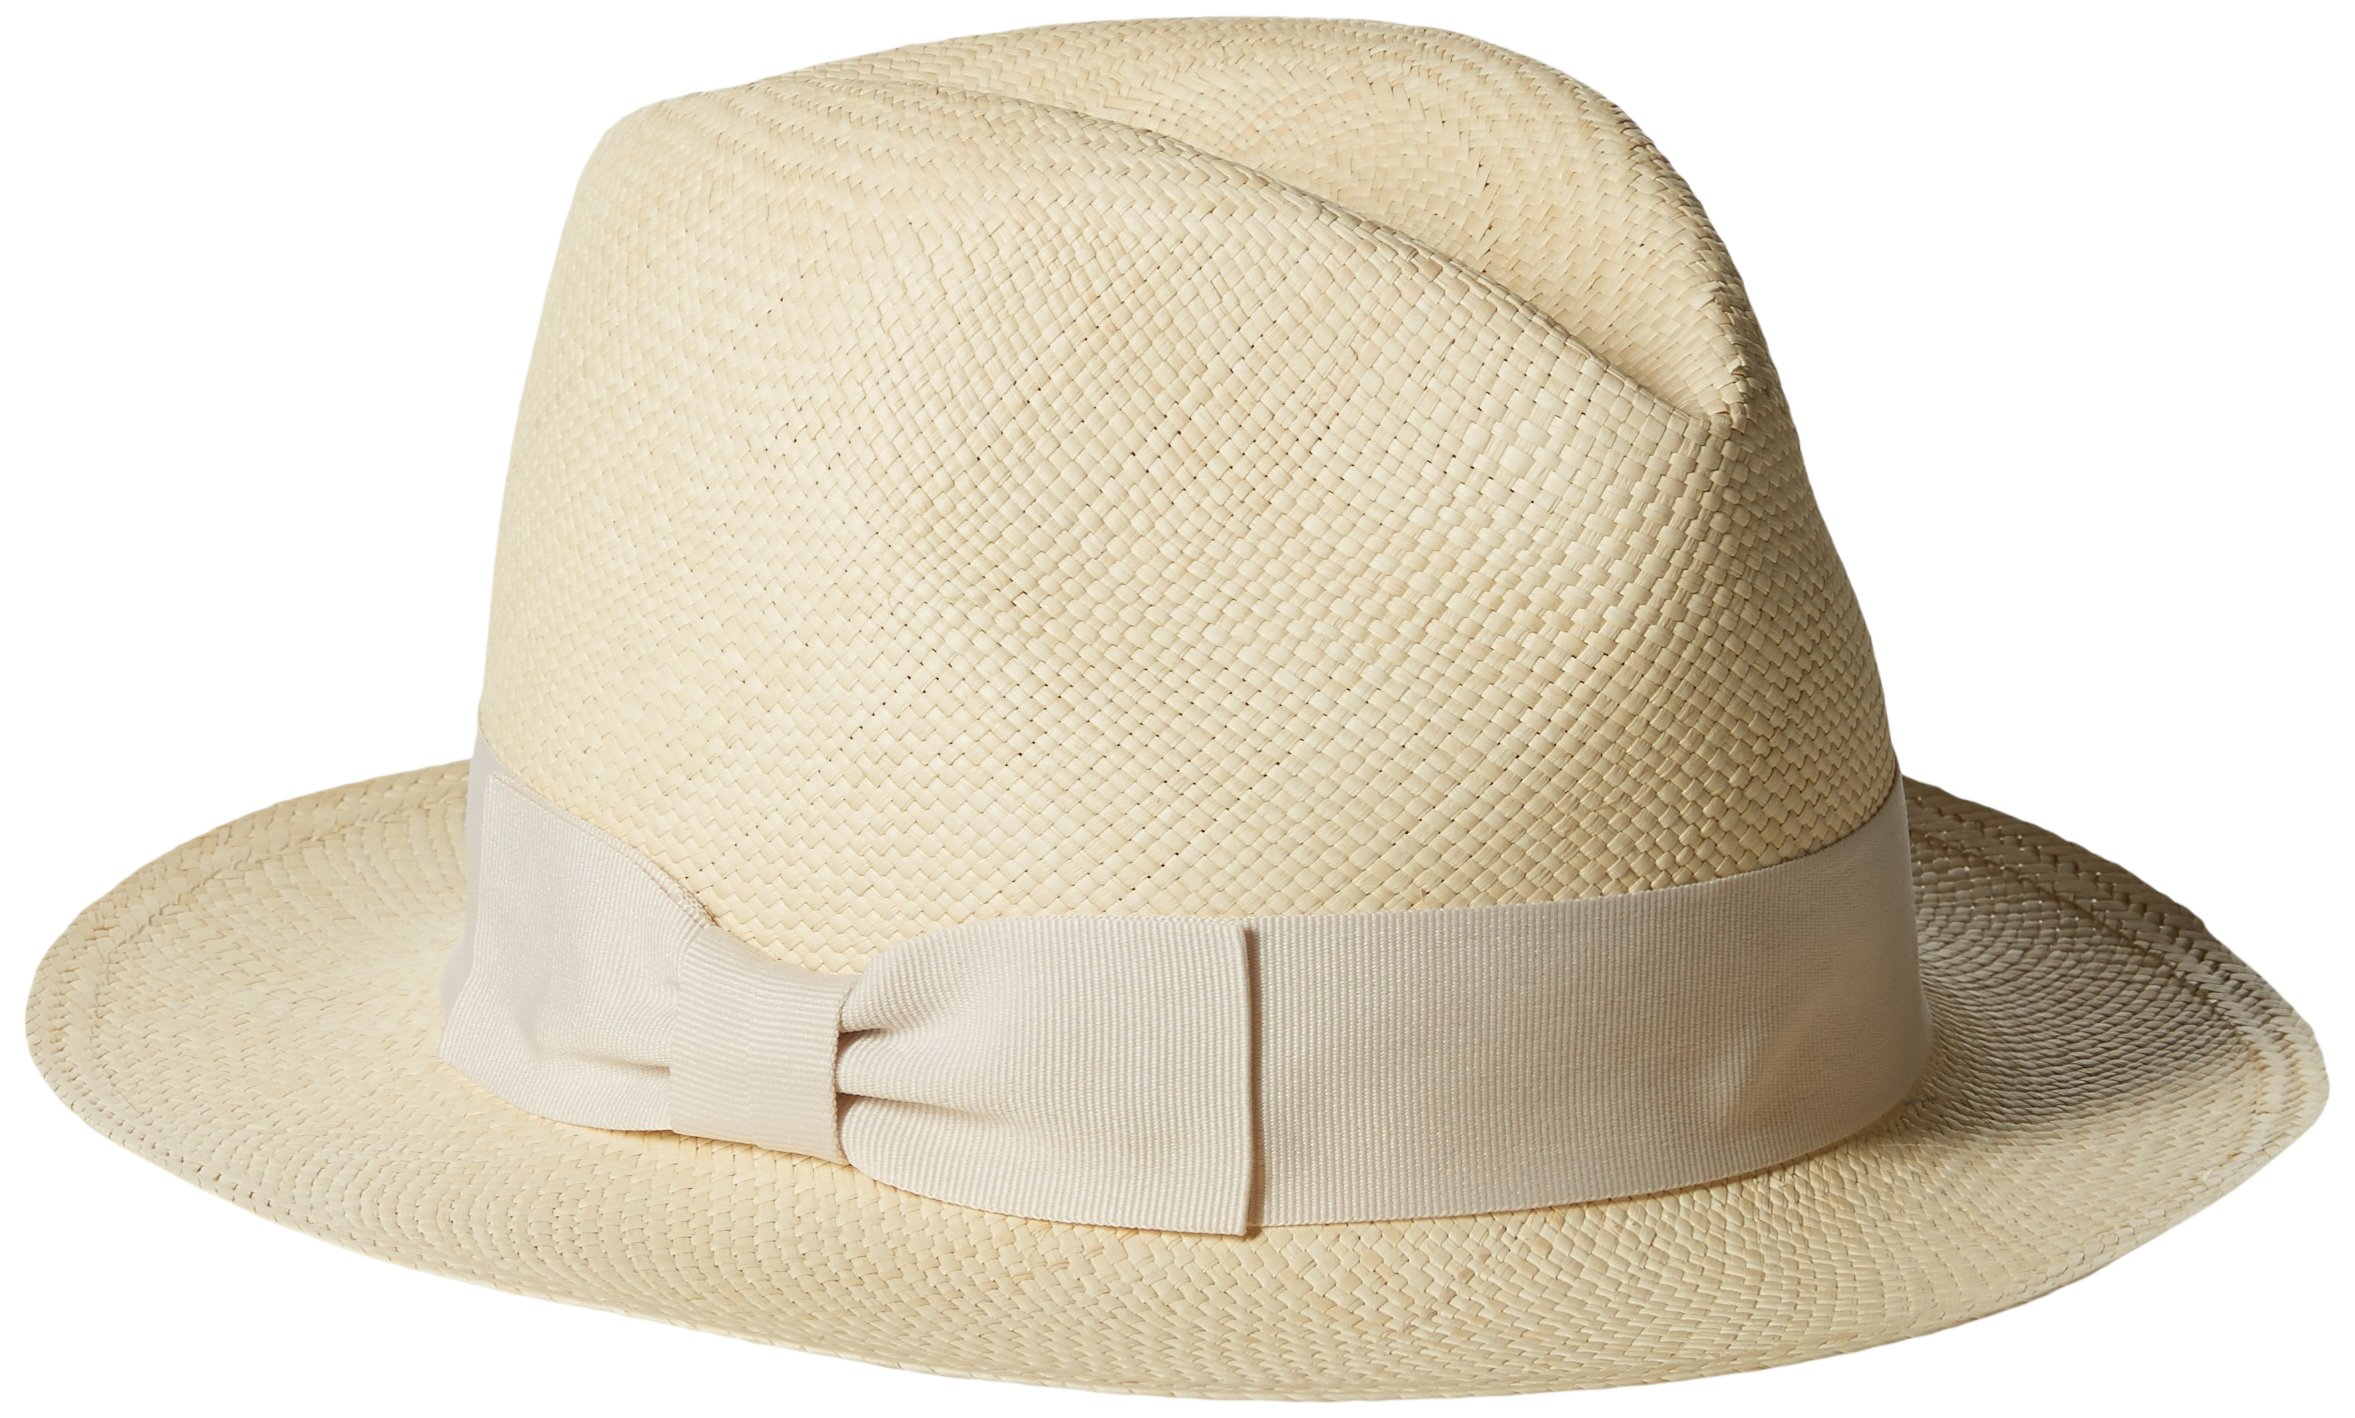 Hat Attack Women's Original Panama Hat with Classic Bow Trim, Natural, One Size